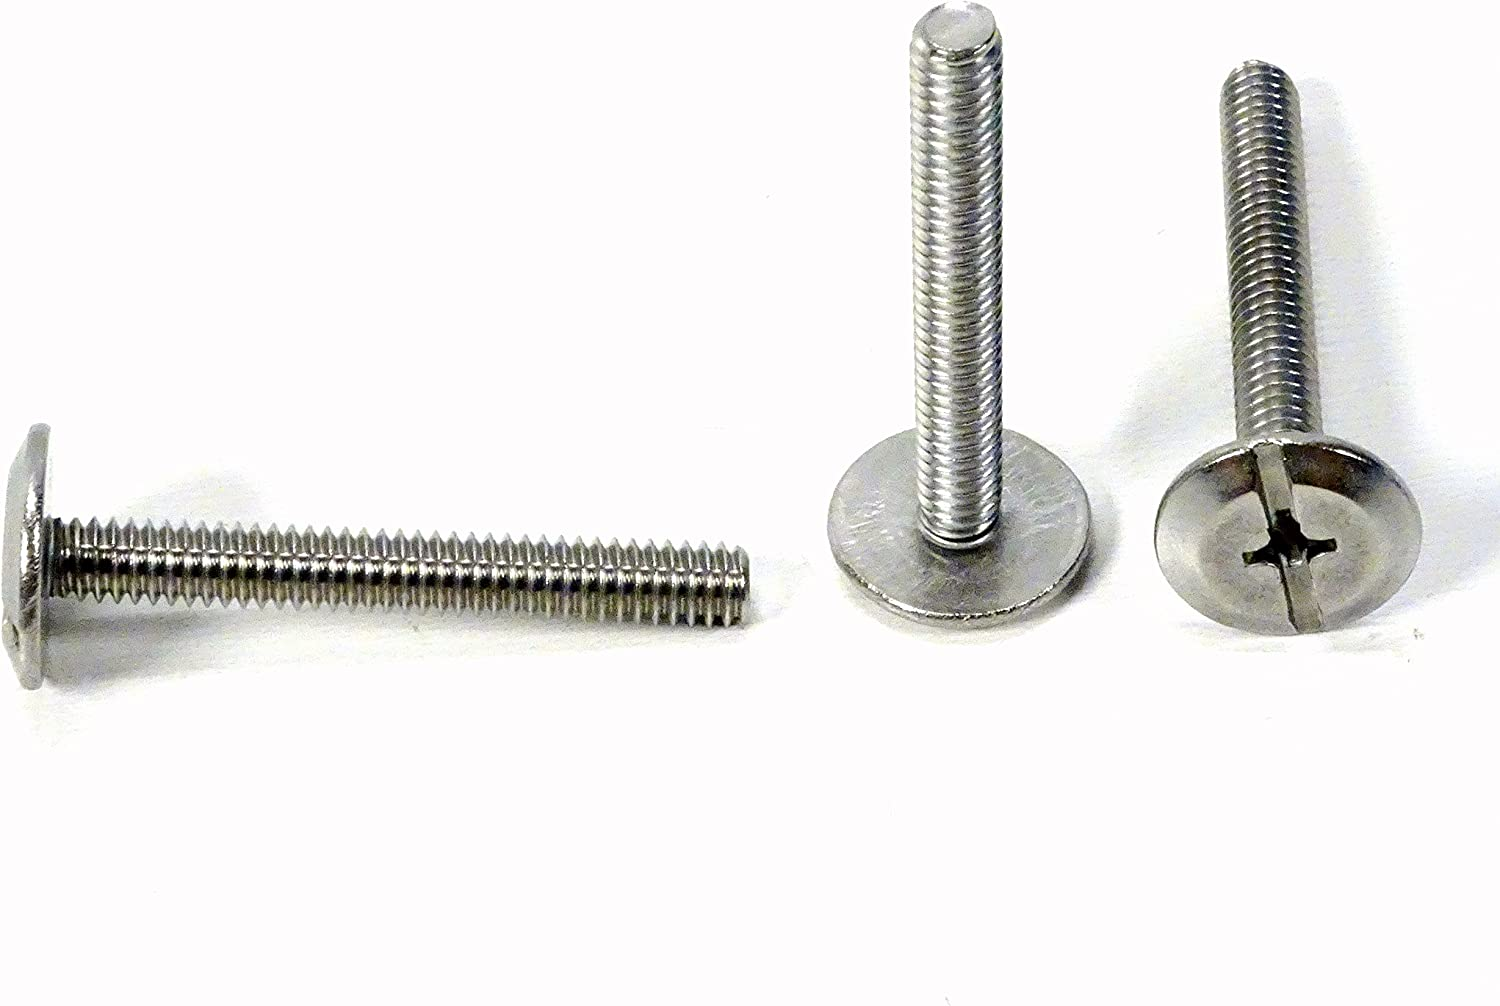 Mountwell Hardware HighWind Solutions 1/4-20 x 2 Stainless Steel Sidewalk Hurricane Bolt by (25 pieces)